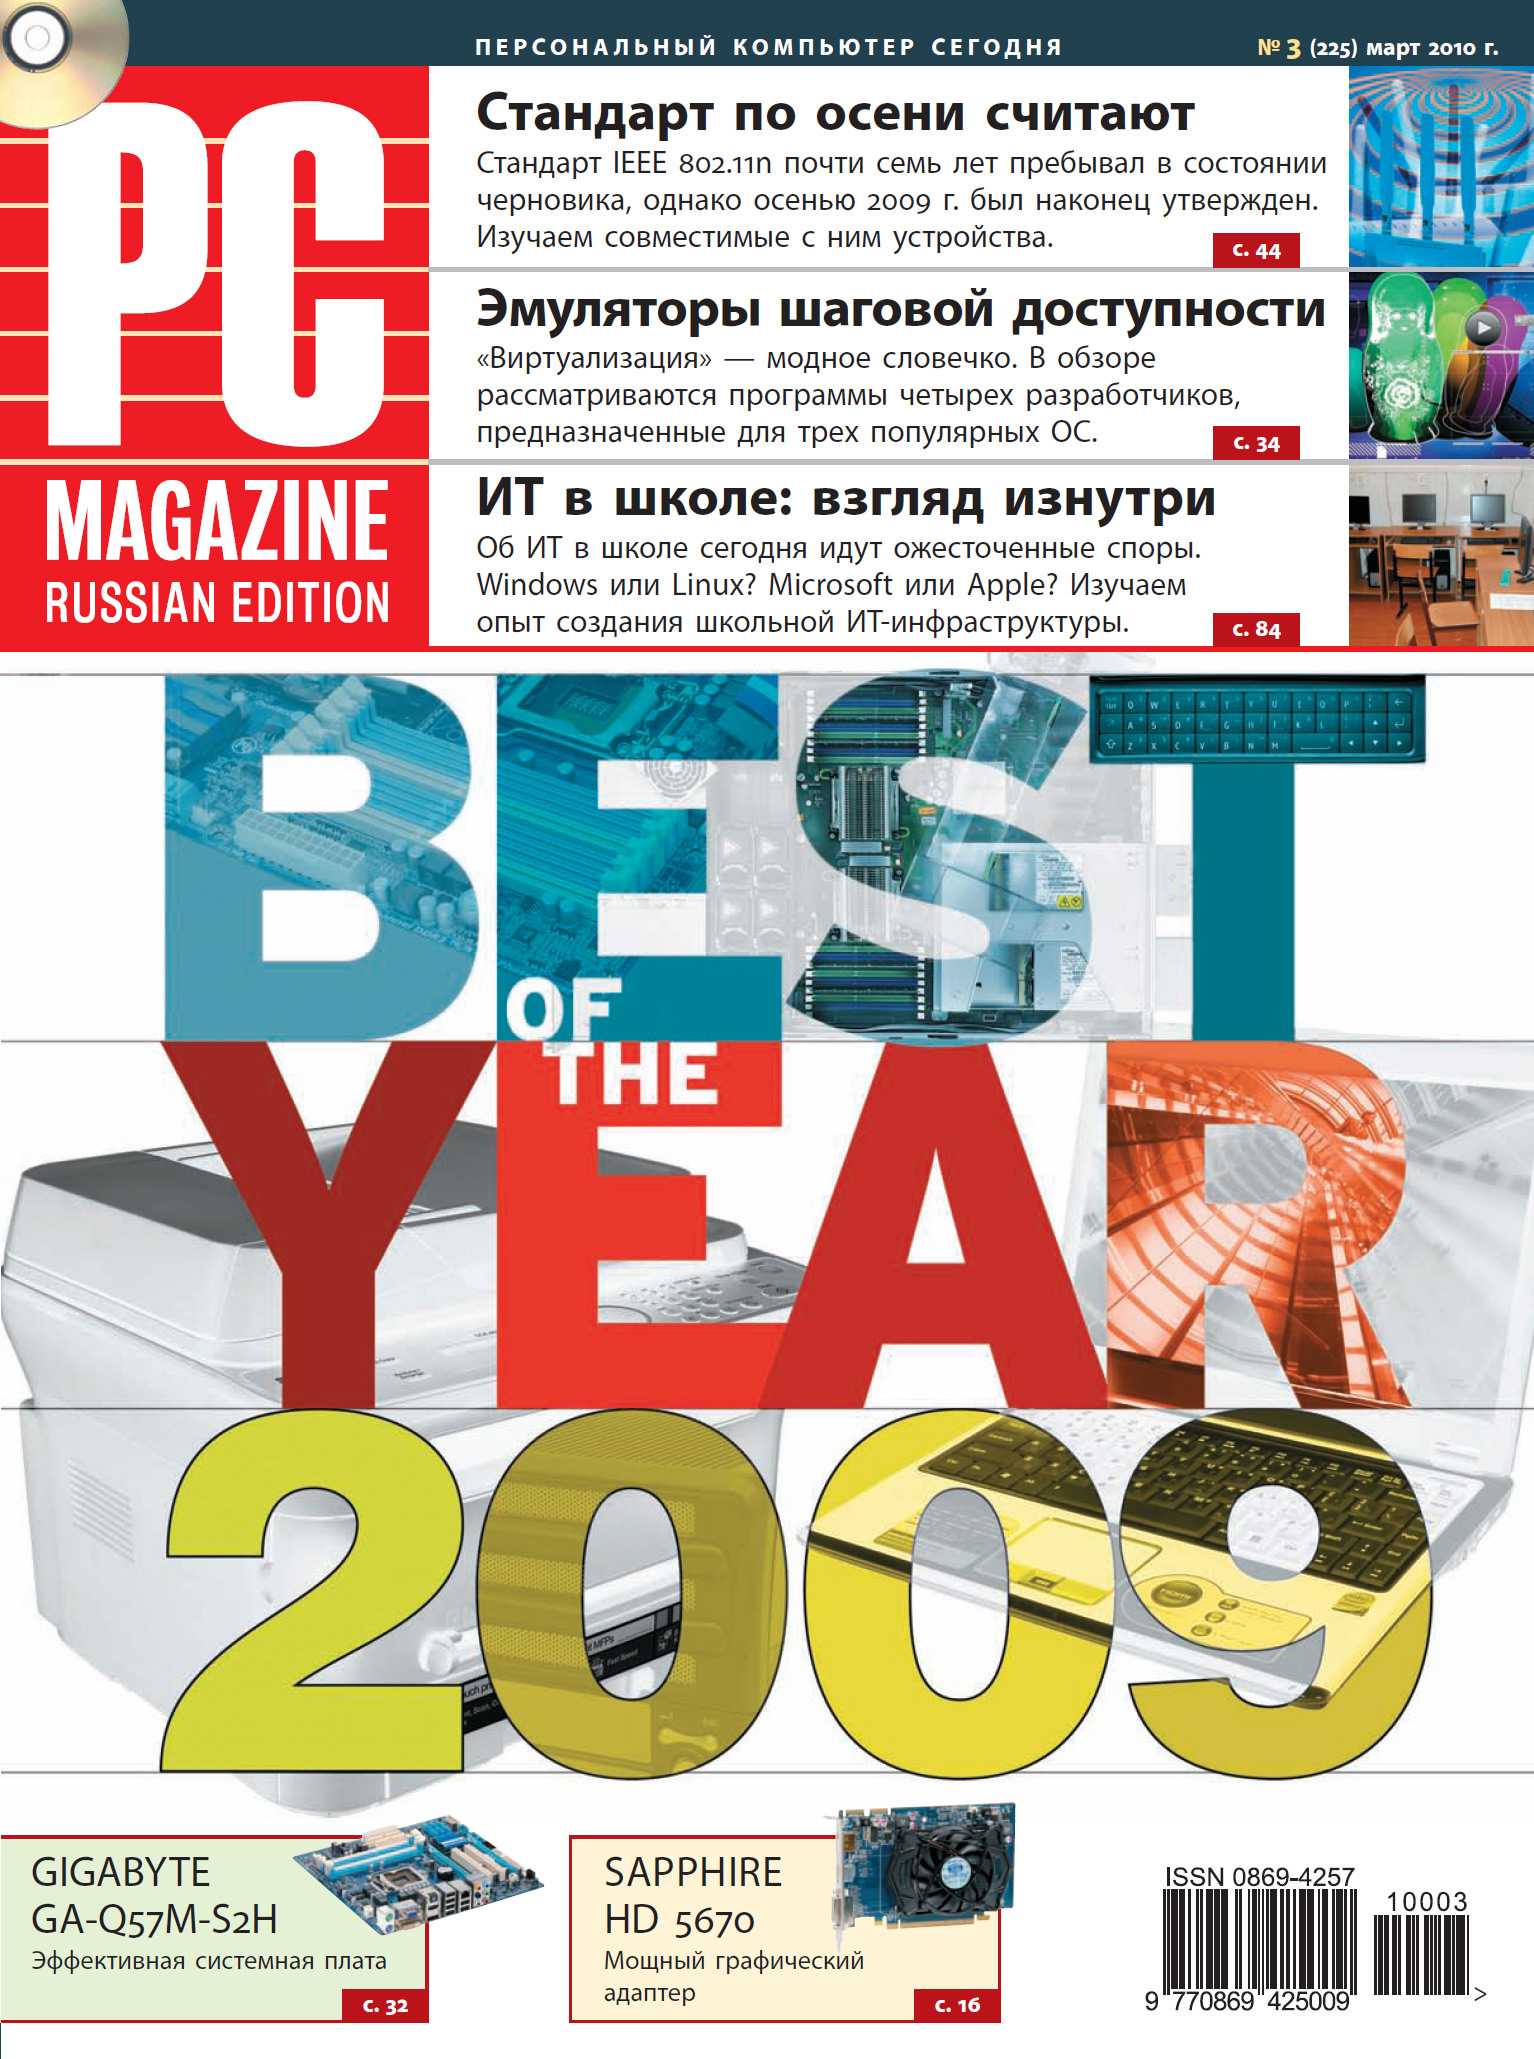 PC Magazine/RE Журнал PC Magazine/RE №03/2010 pc magazine re журнал pc magazine re 8 2011